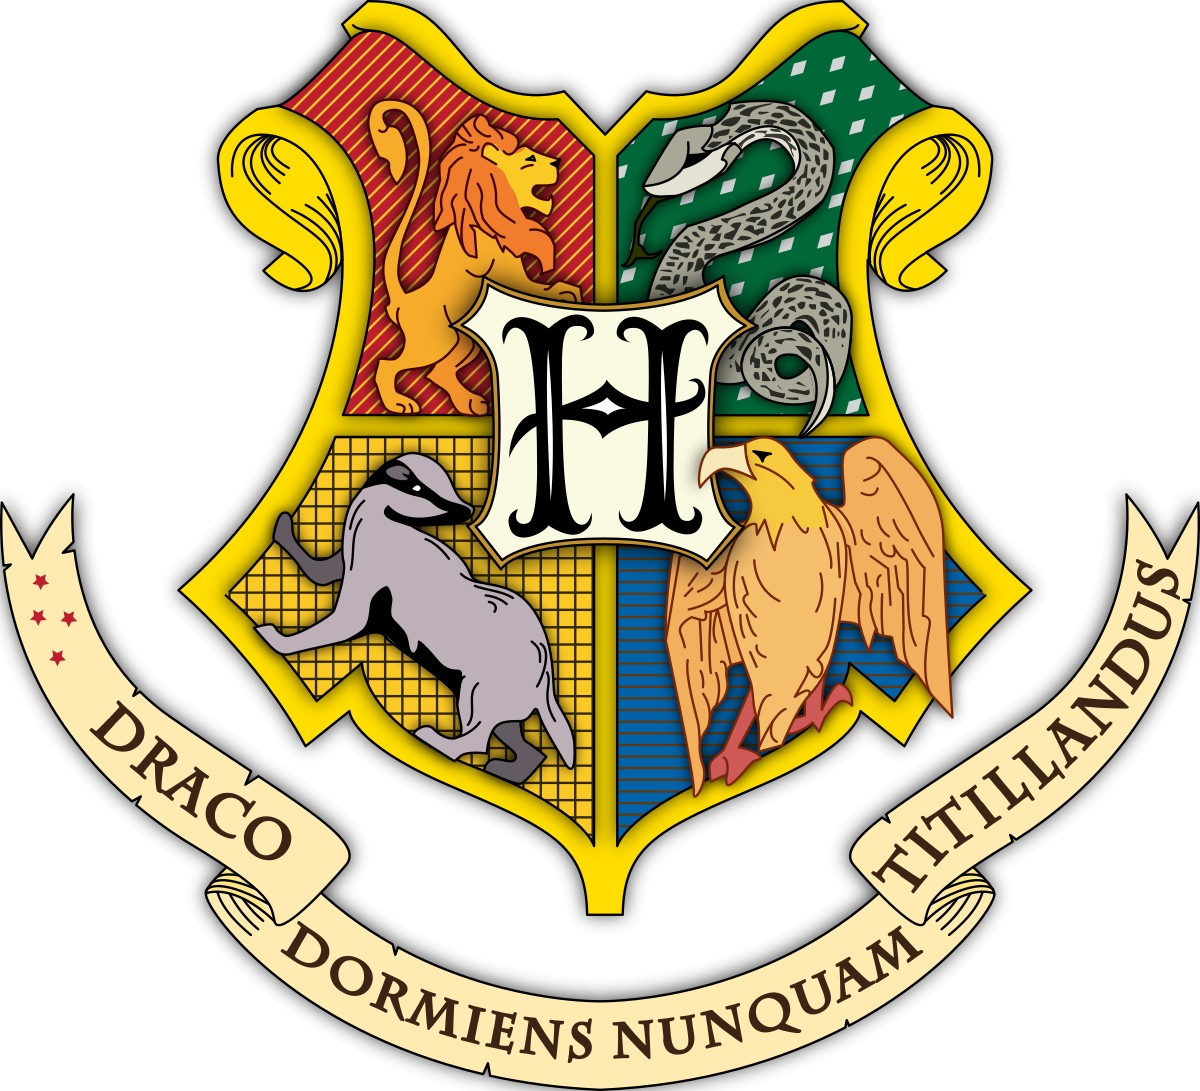 Which Hogwarts house are you really in?